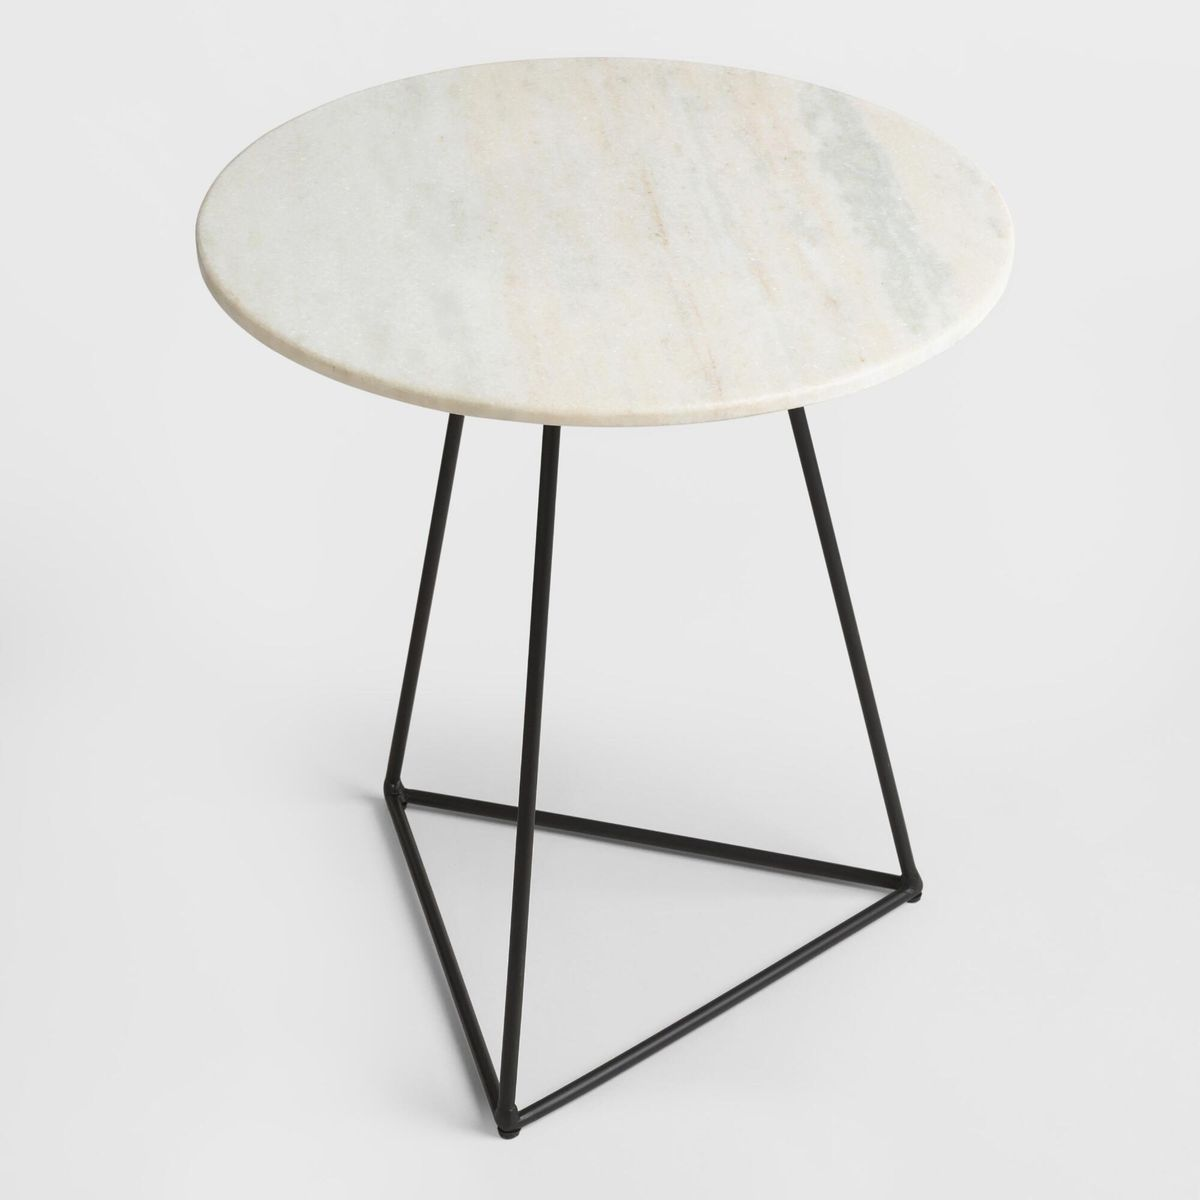 best side tables under curbed xxx low round accent table white marble and metal tray asian lamps cool outdoor coffee dining chairs bar height legs vintage room modern home